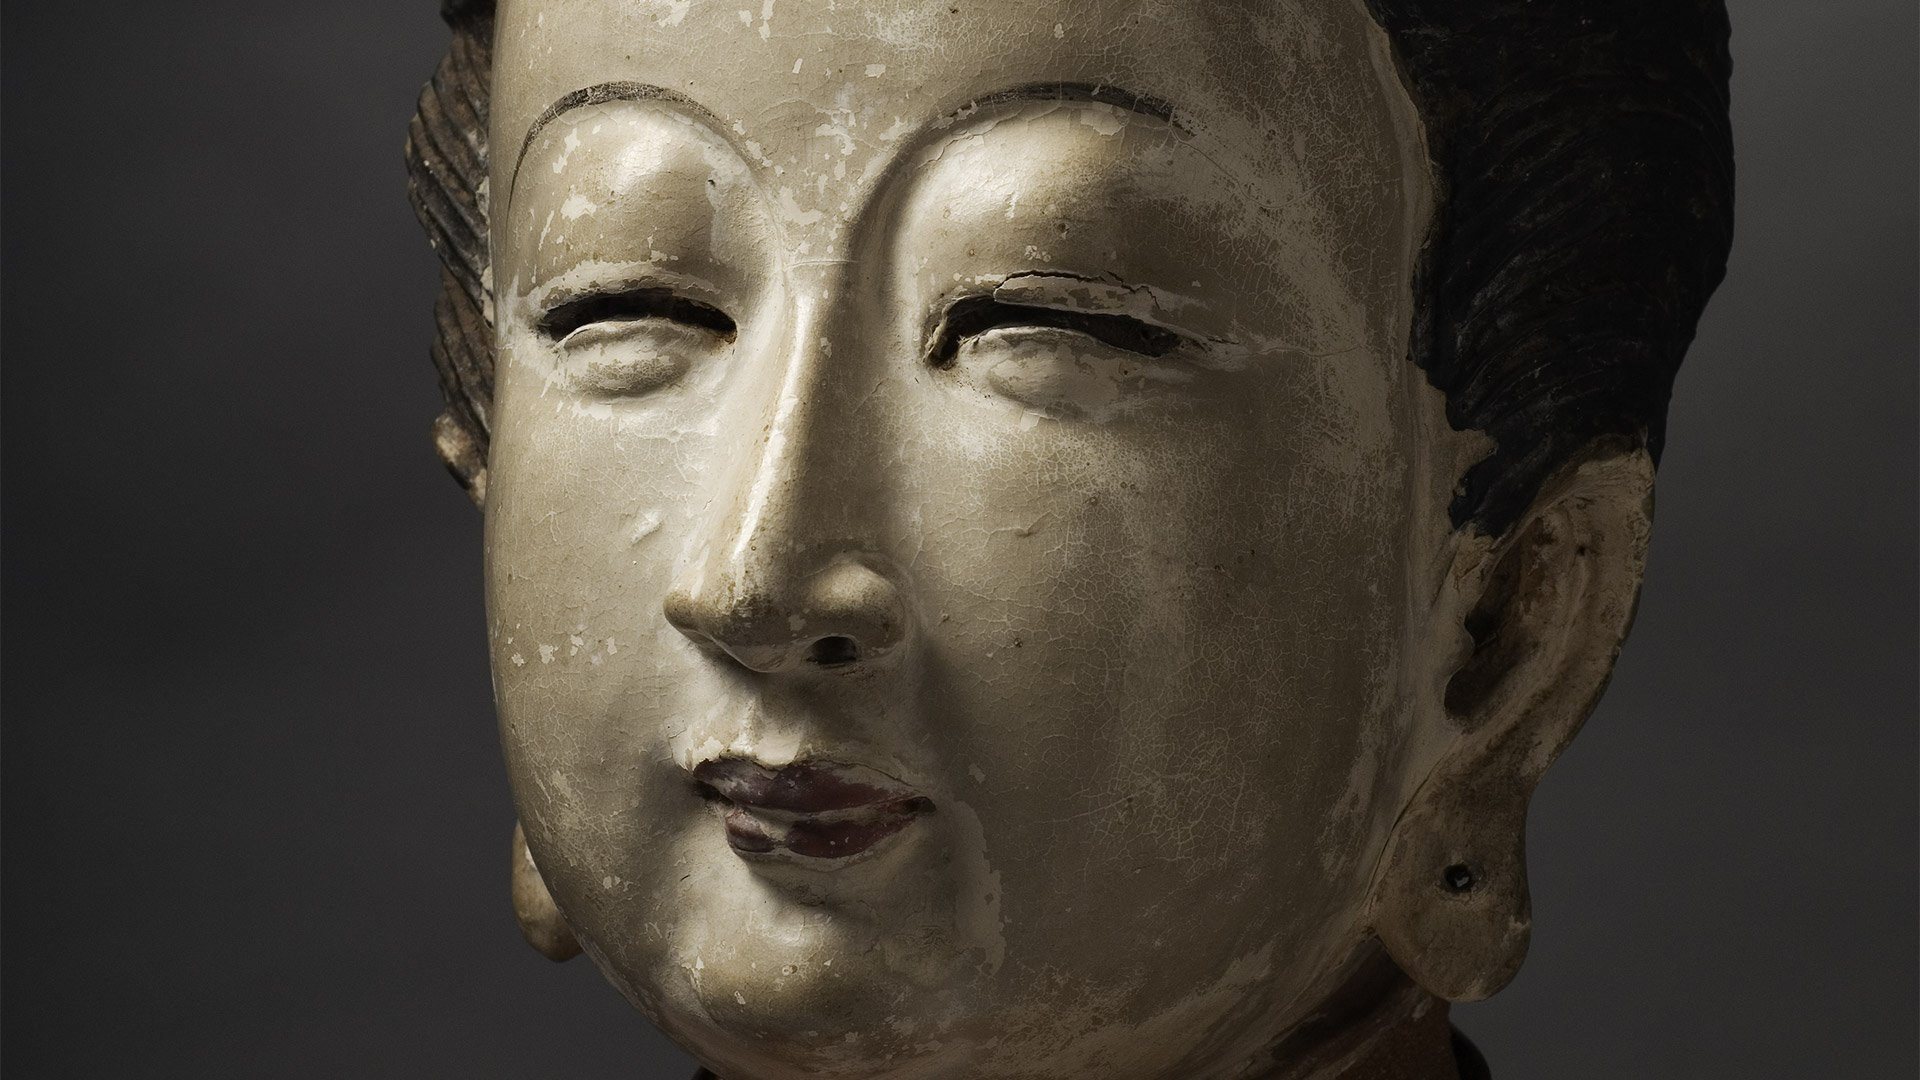 Exhibitions at the Museum of Far Eastern Antiquities